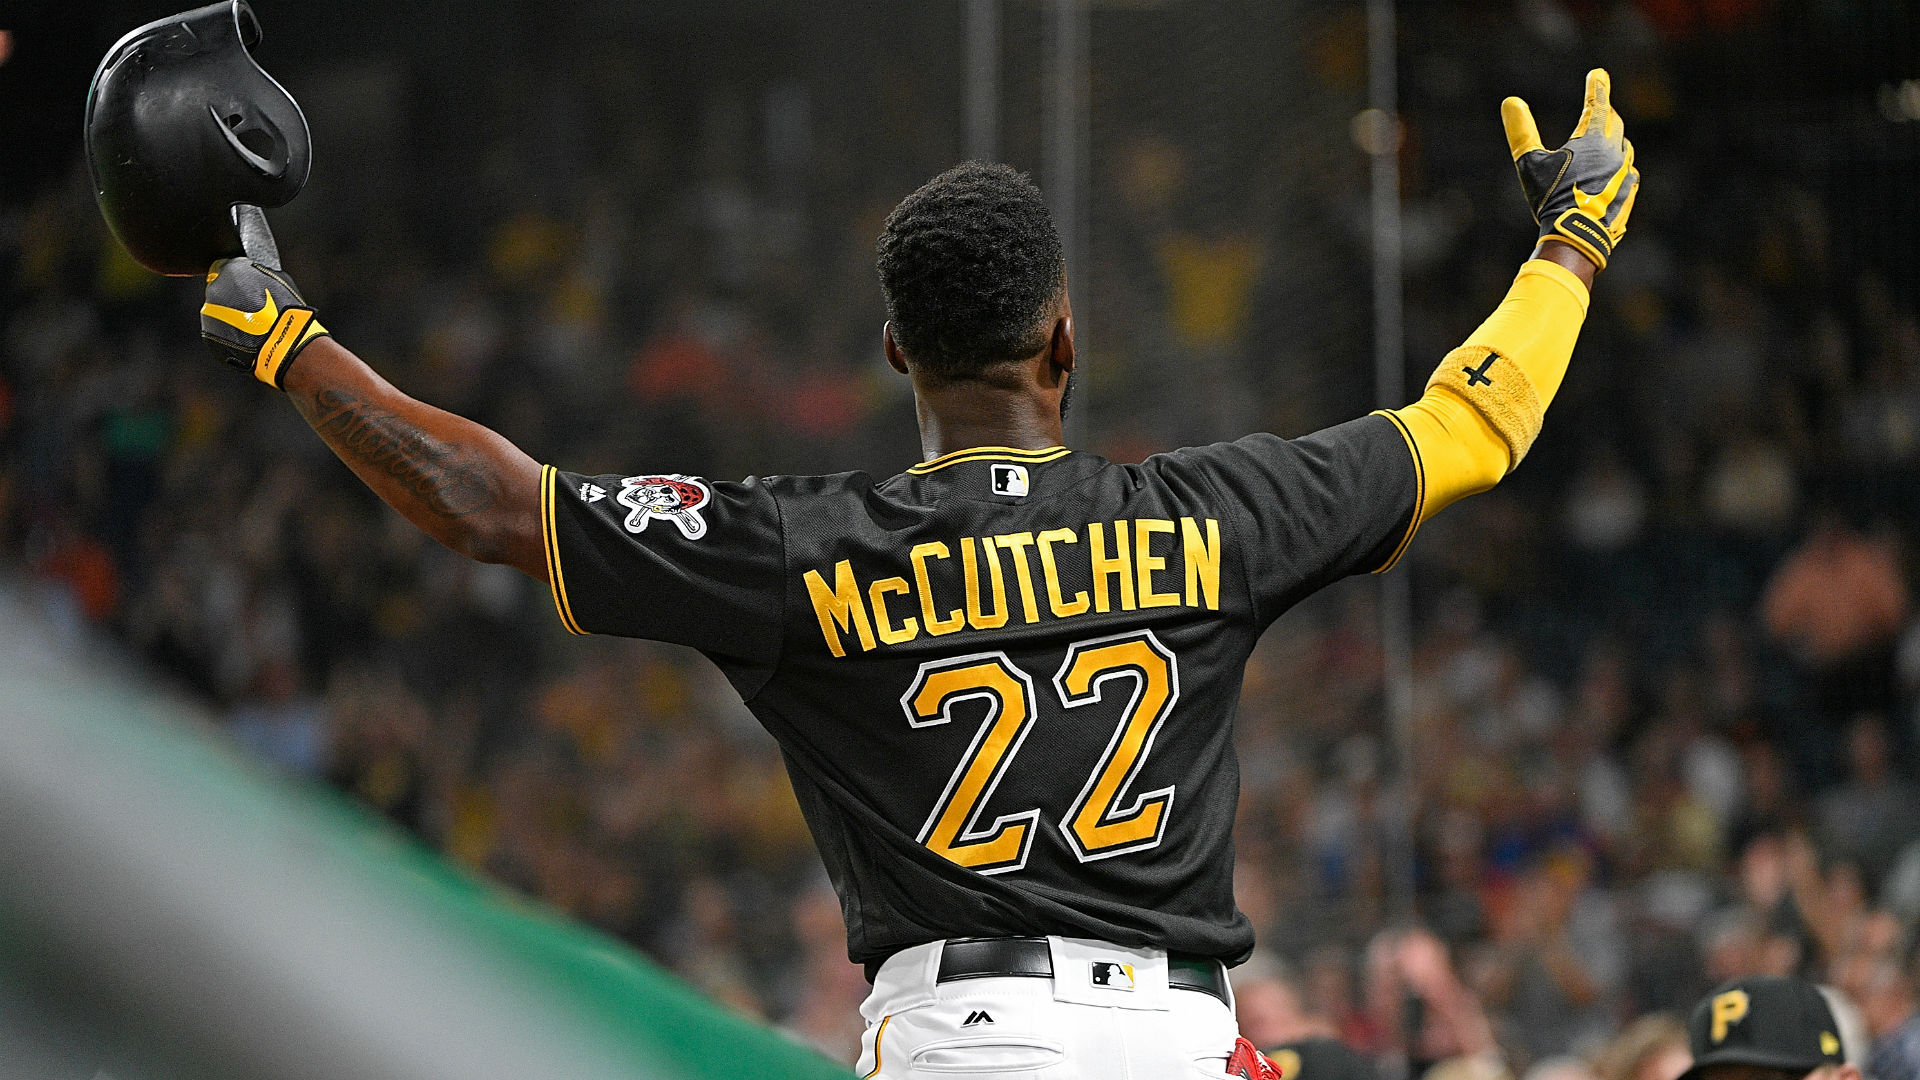 Phillies agree to sign McCutchen